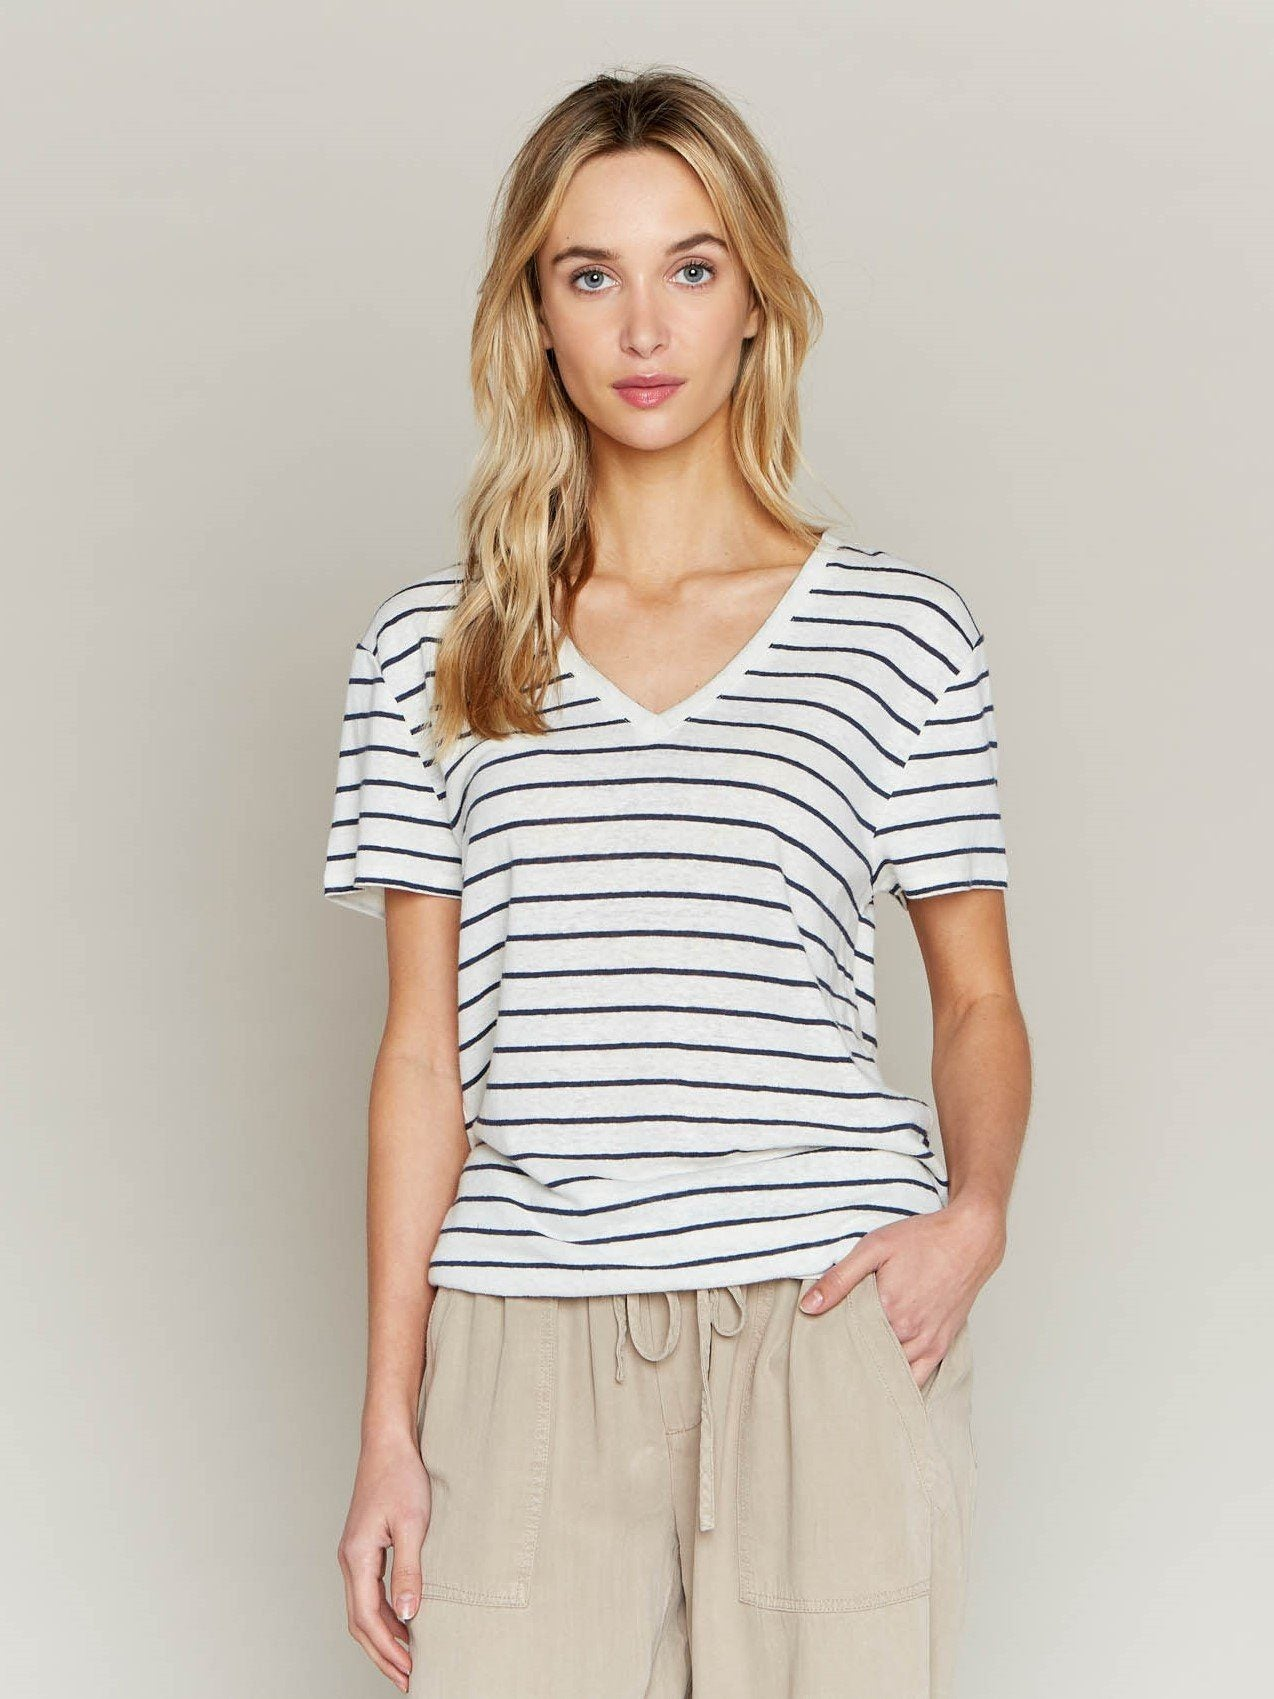 Cordelia Tee T-Shirt Thread & Supply Ivory Navy S